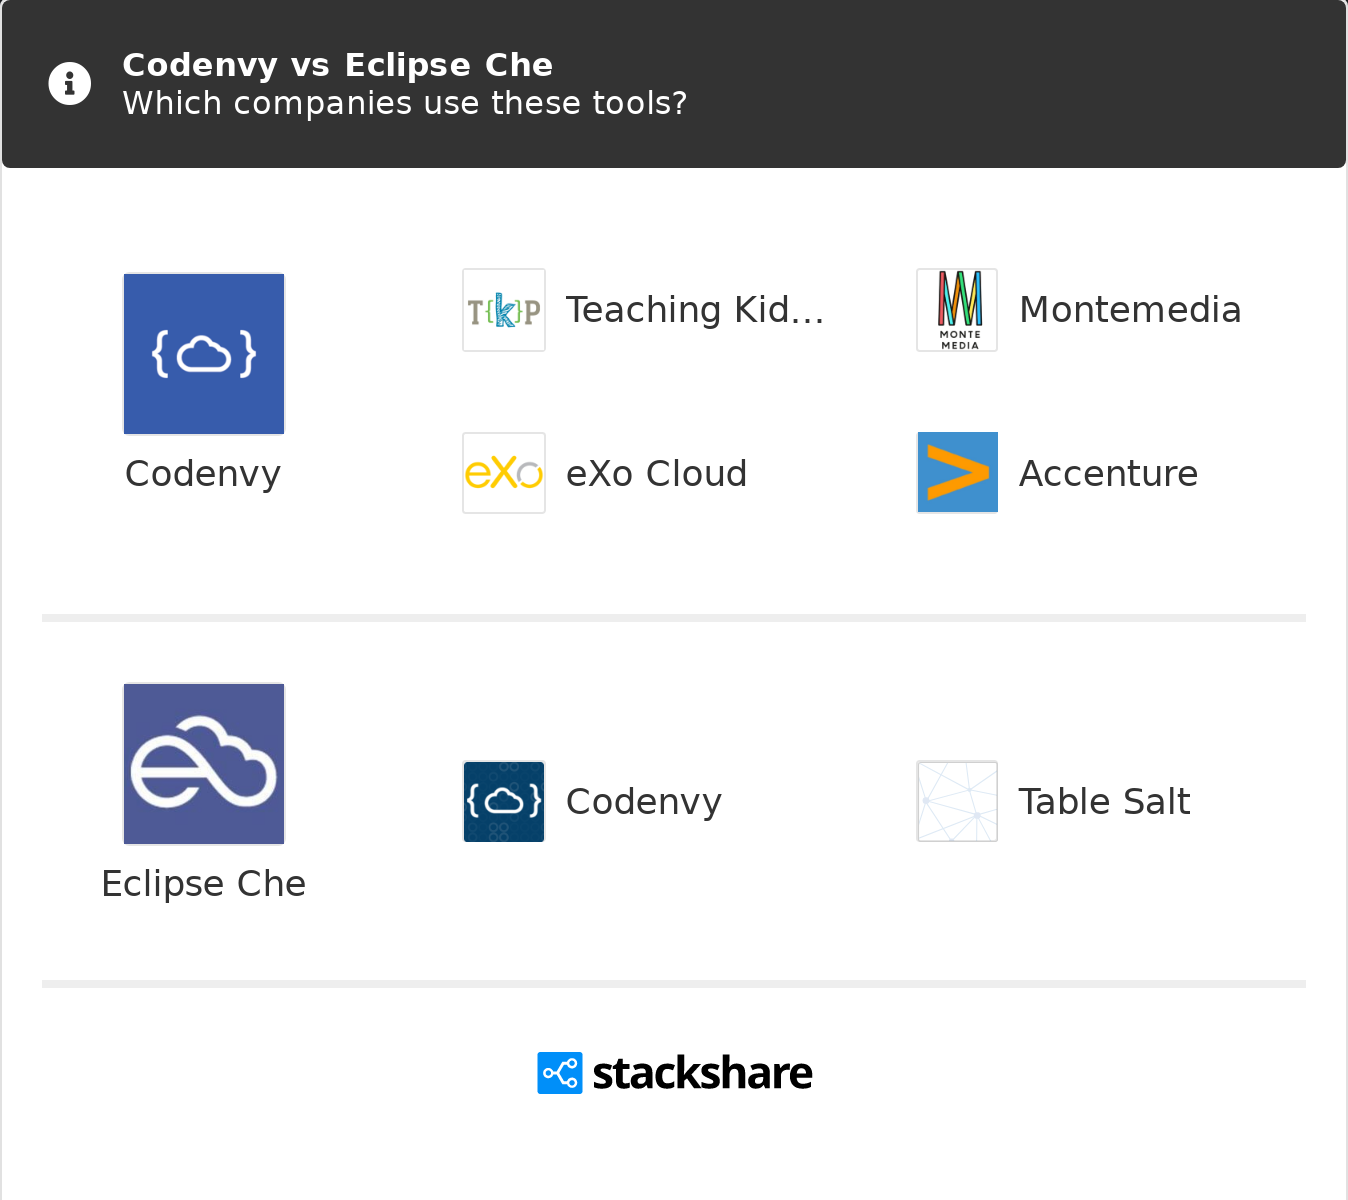 Codenvy vs Eclipse Che | What are the differences?